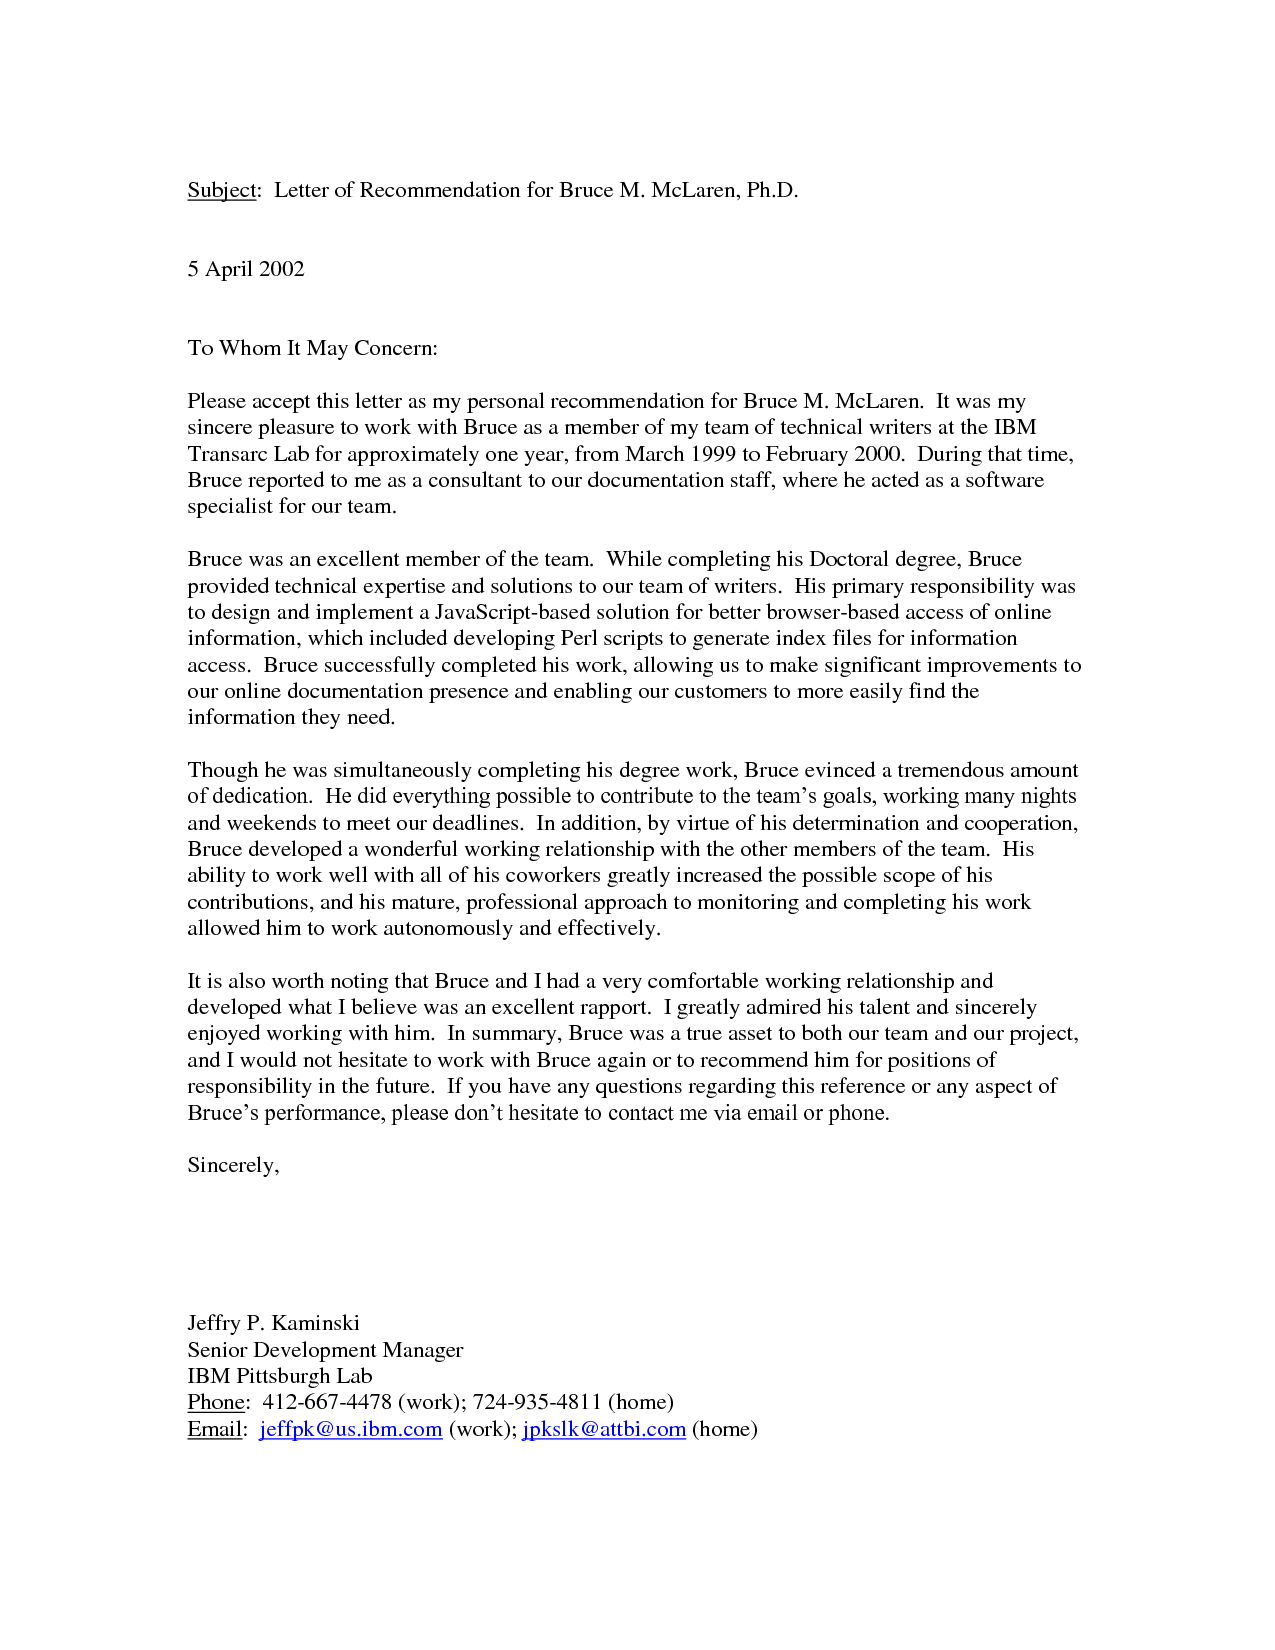 personal reference letter of recommendationletter of recommendation formal letter sample